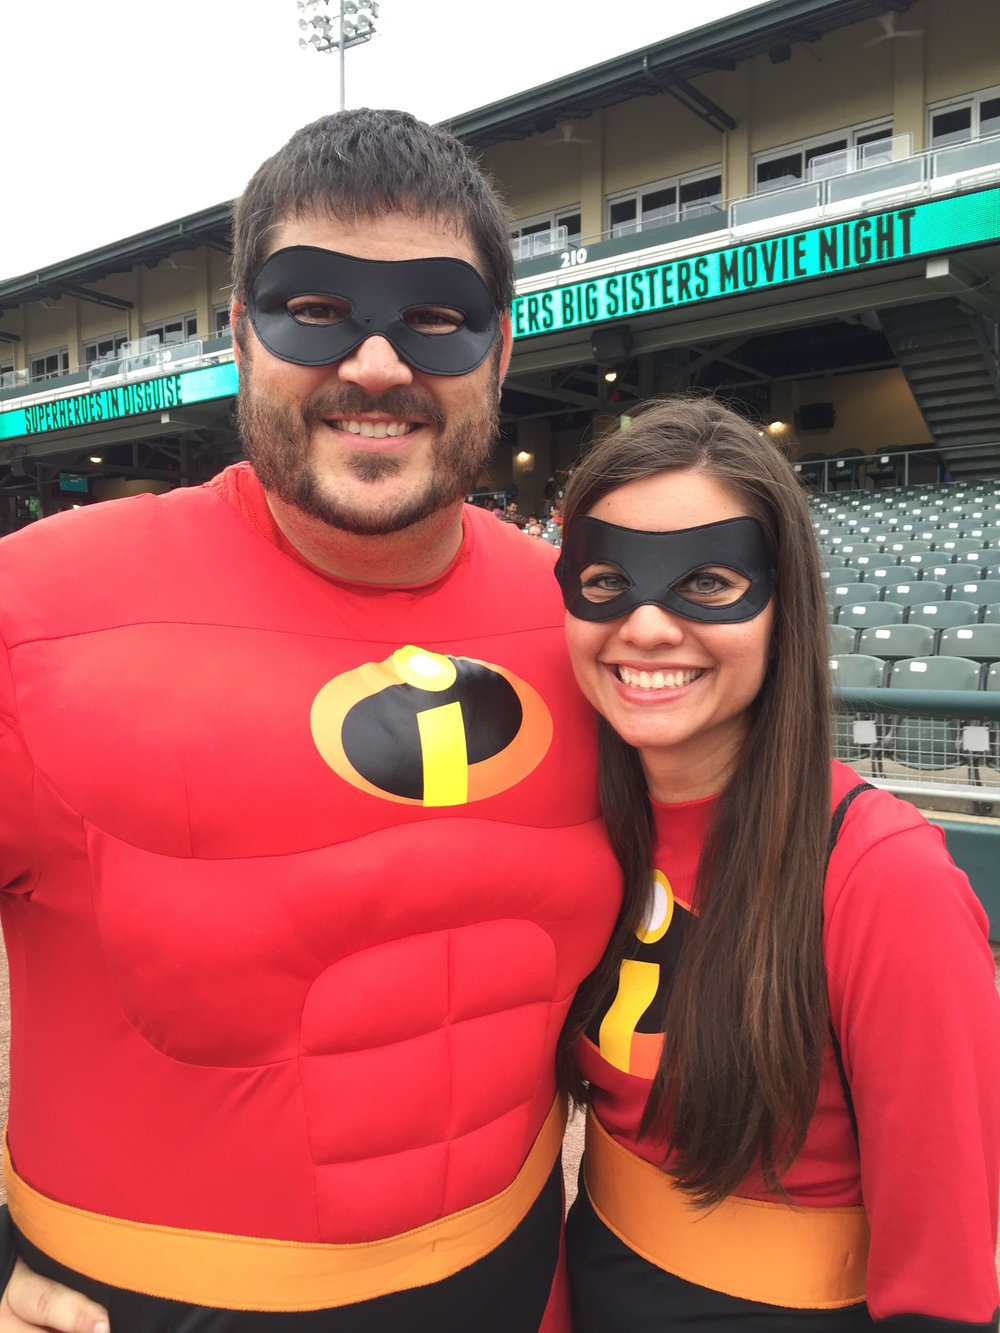 Anna Moorman and her husband, Eric, at BBBS Superheroes in Disguise night at the Dragon's Field